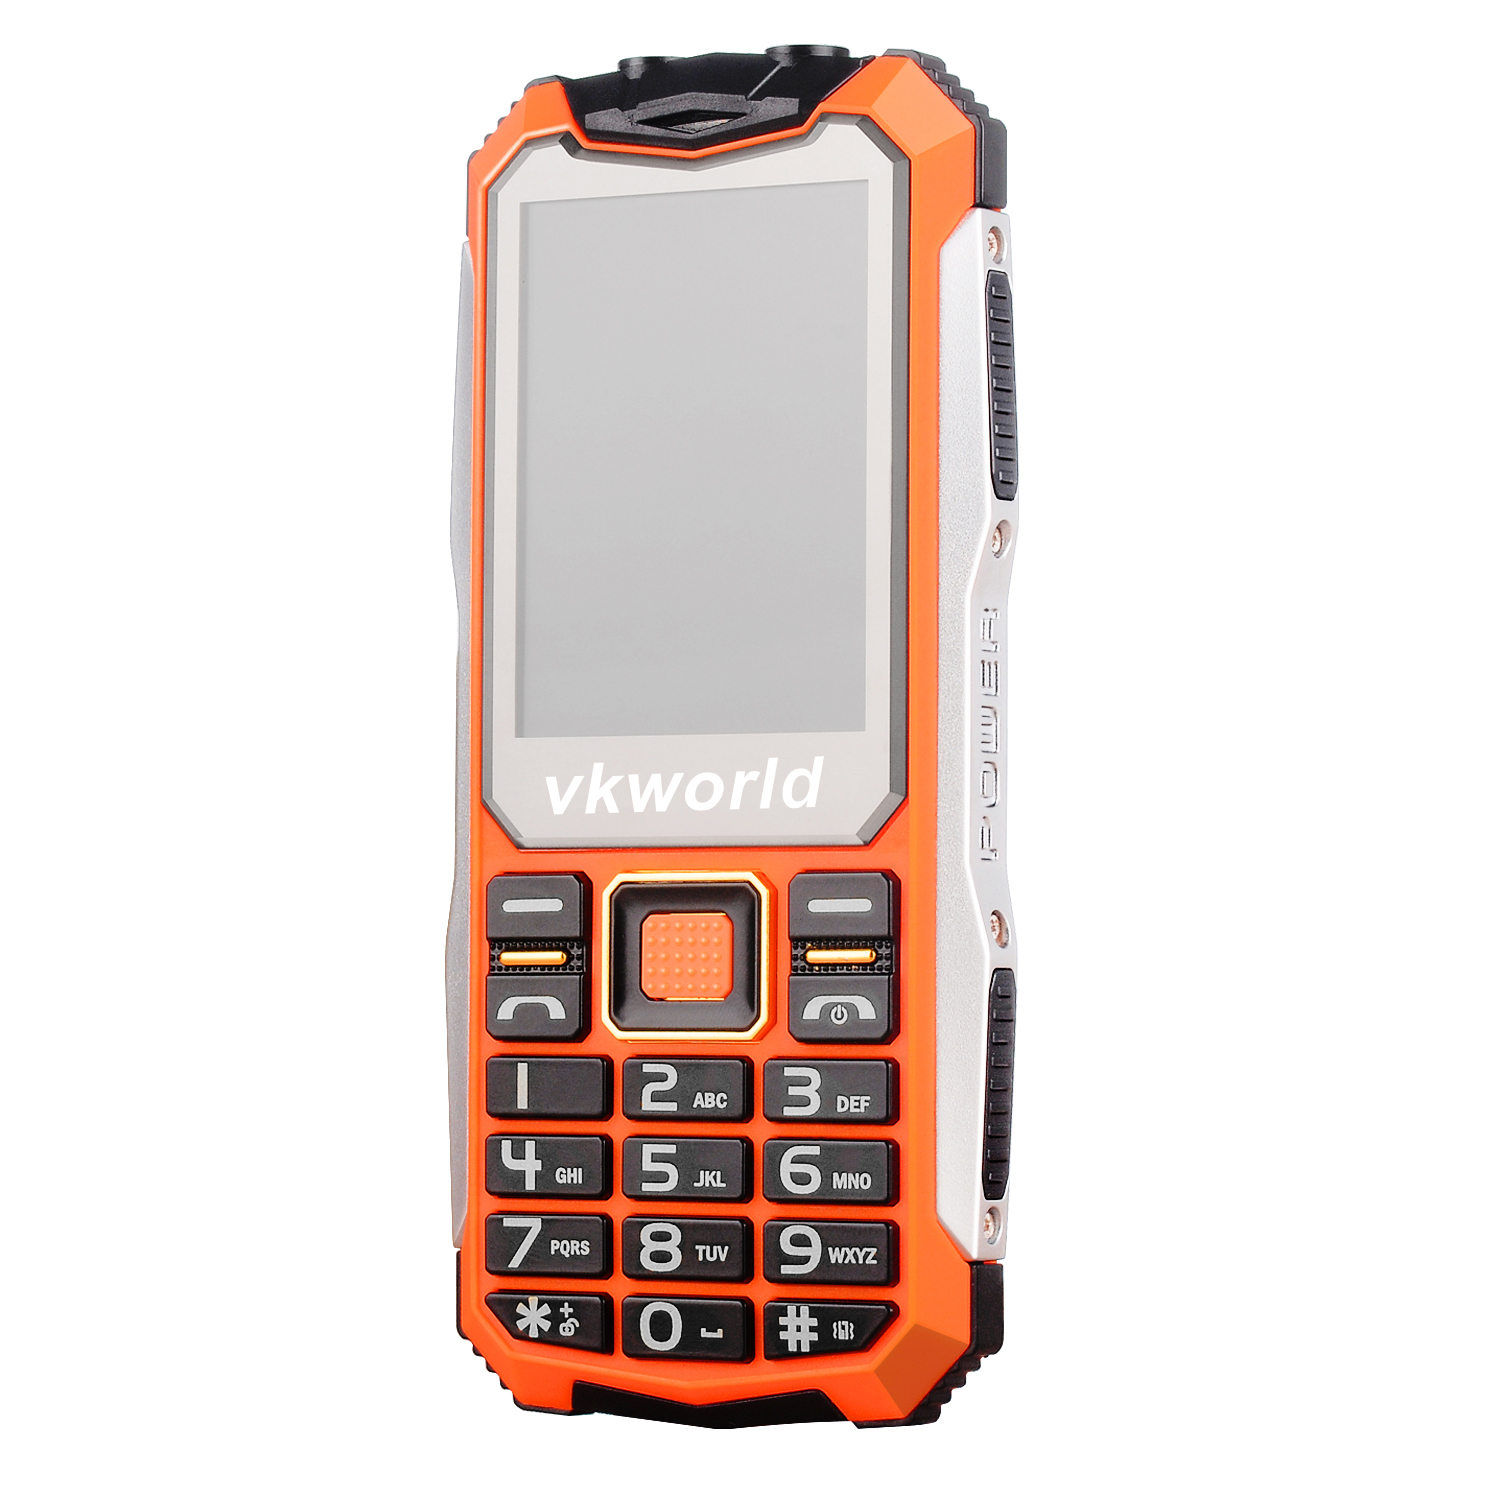 VKworld V3S Mobile Phone Waterproof Dustproof Featured Phone 2.4 inch 320x240 Du